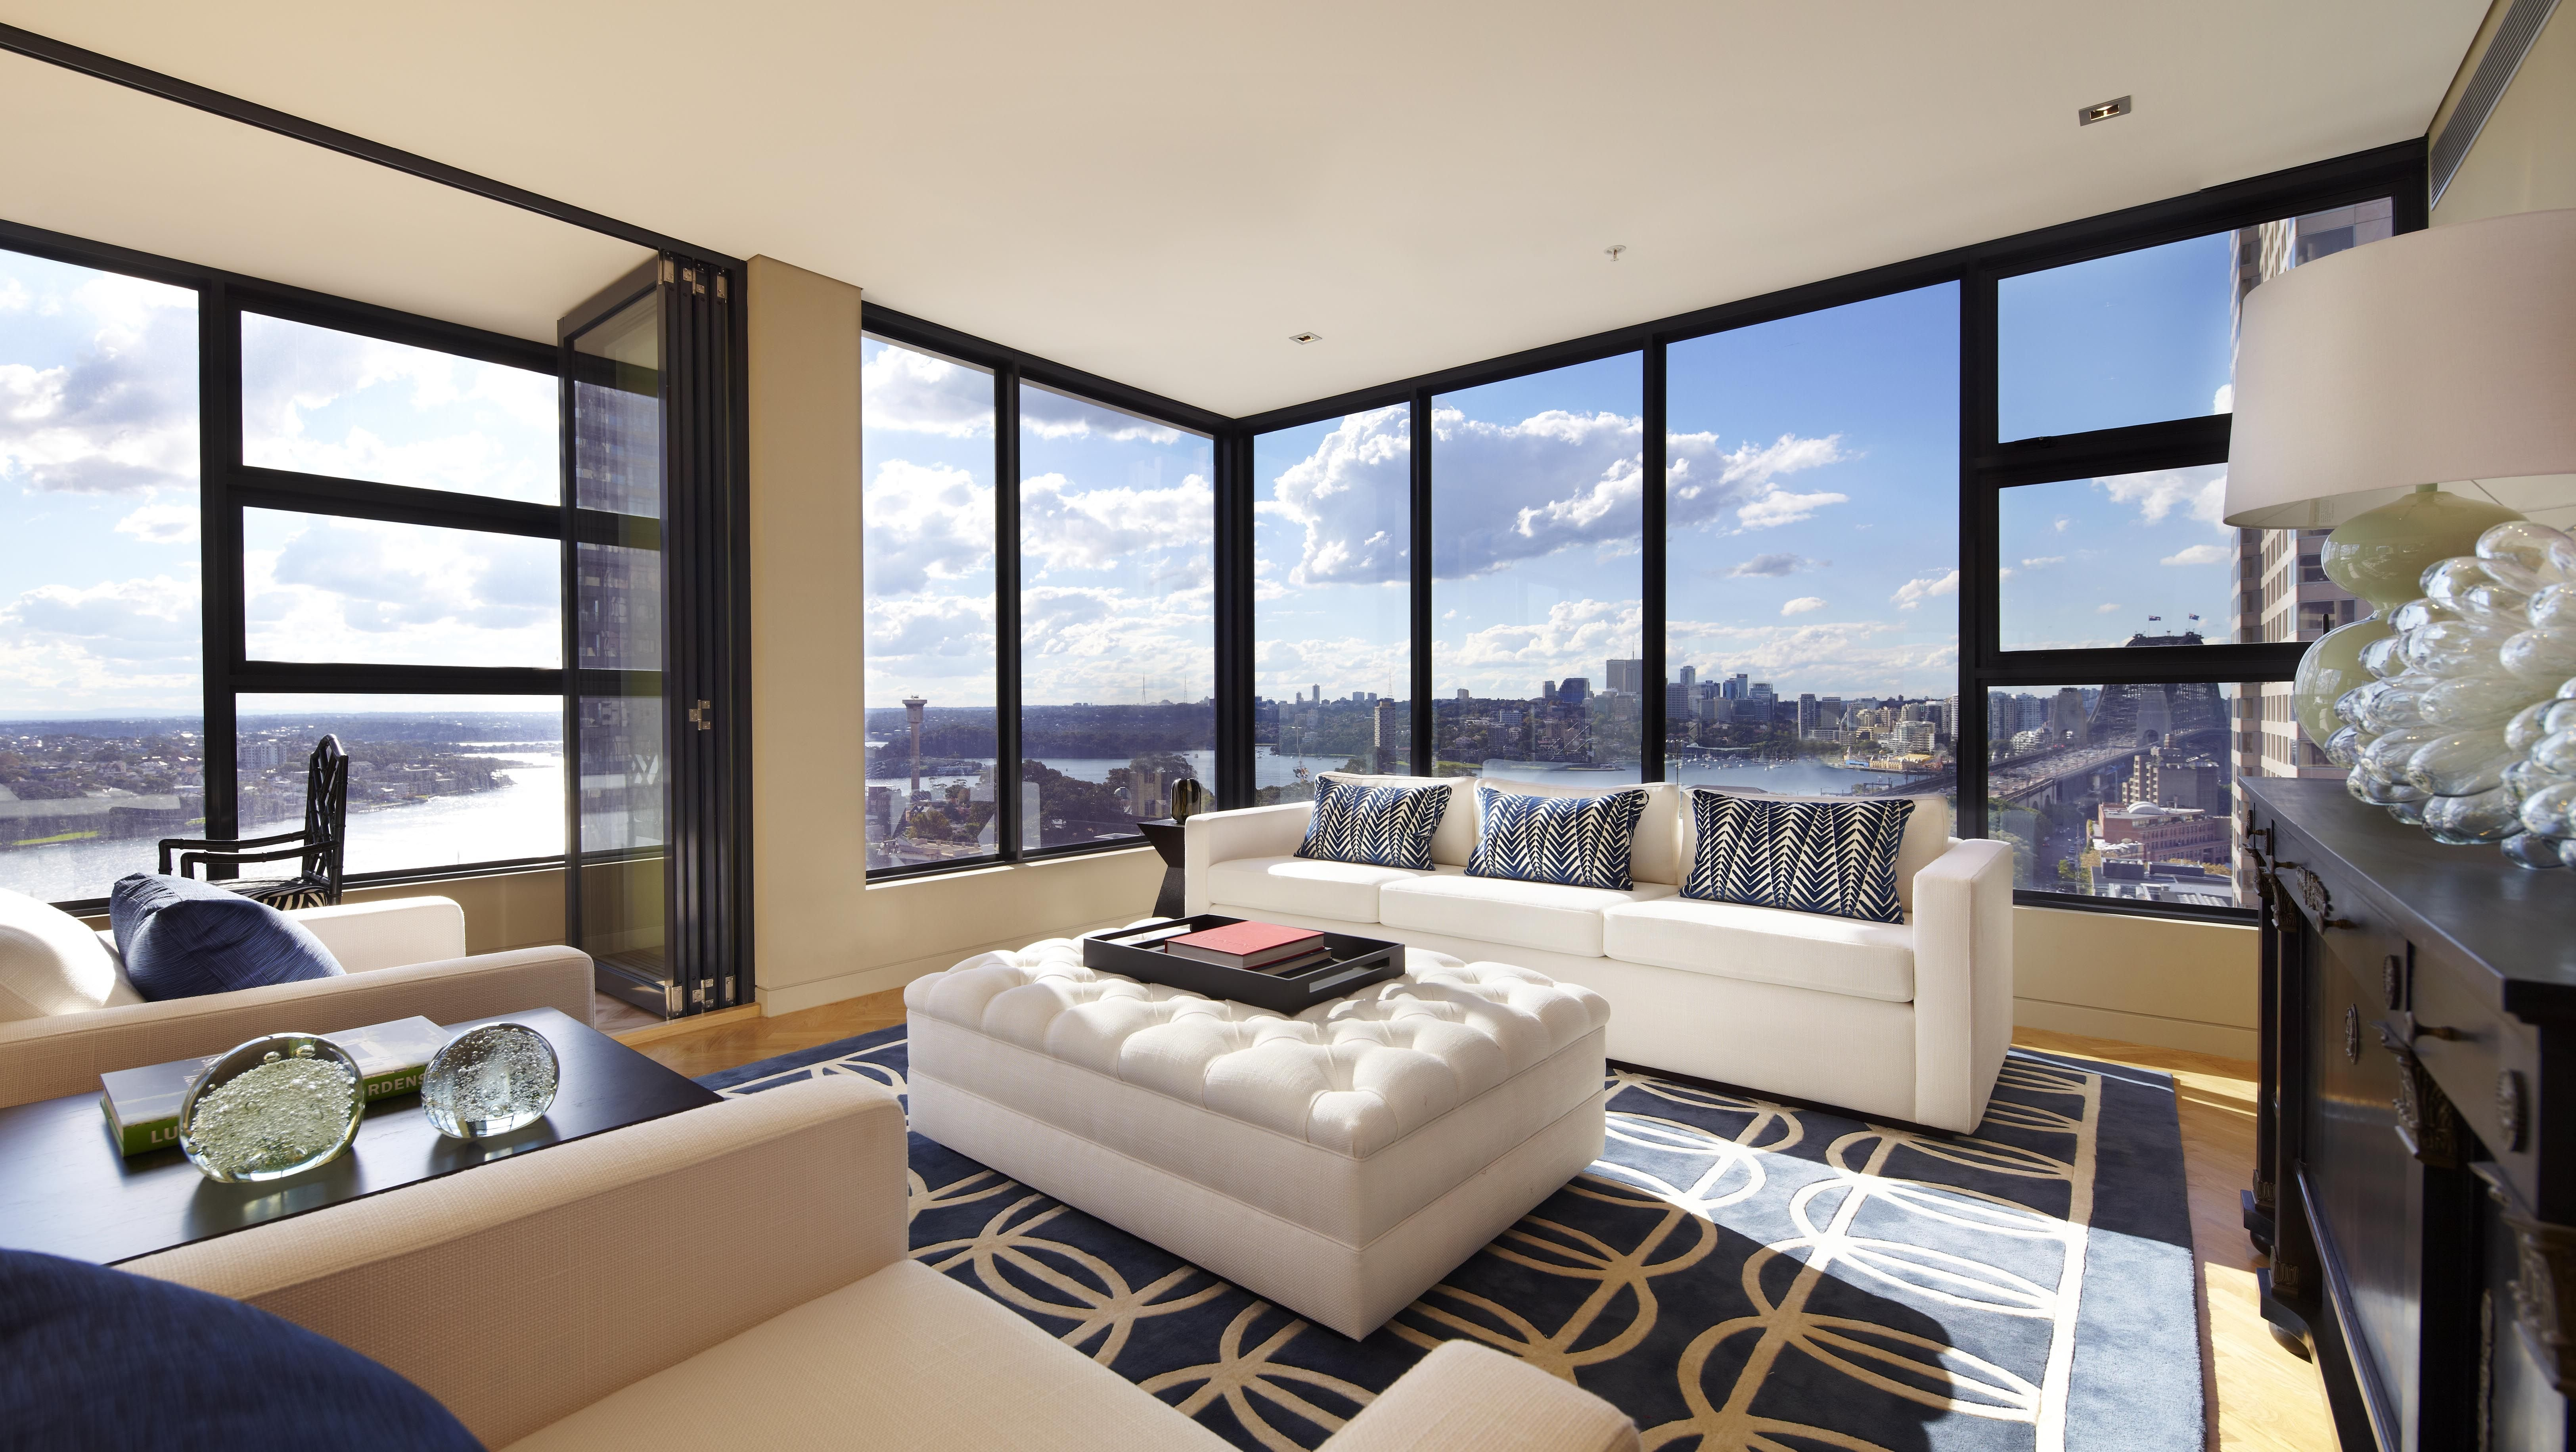 Design Room House Home Apartment Condo 42 Wallpaper - Best Luxury Apartment , HD Wallpaper & Backgrounds